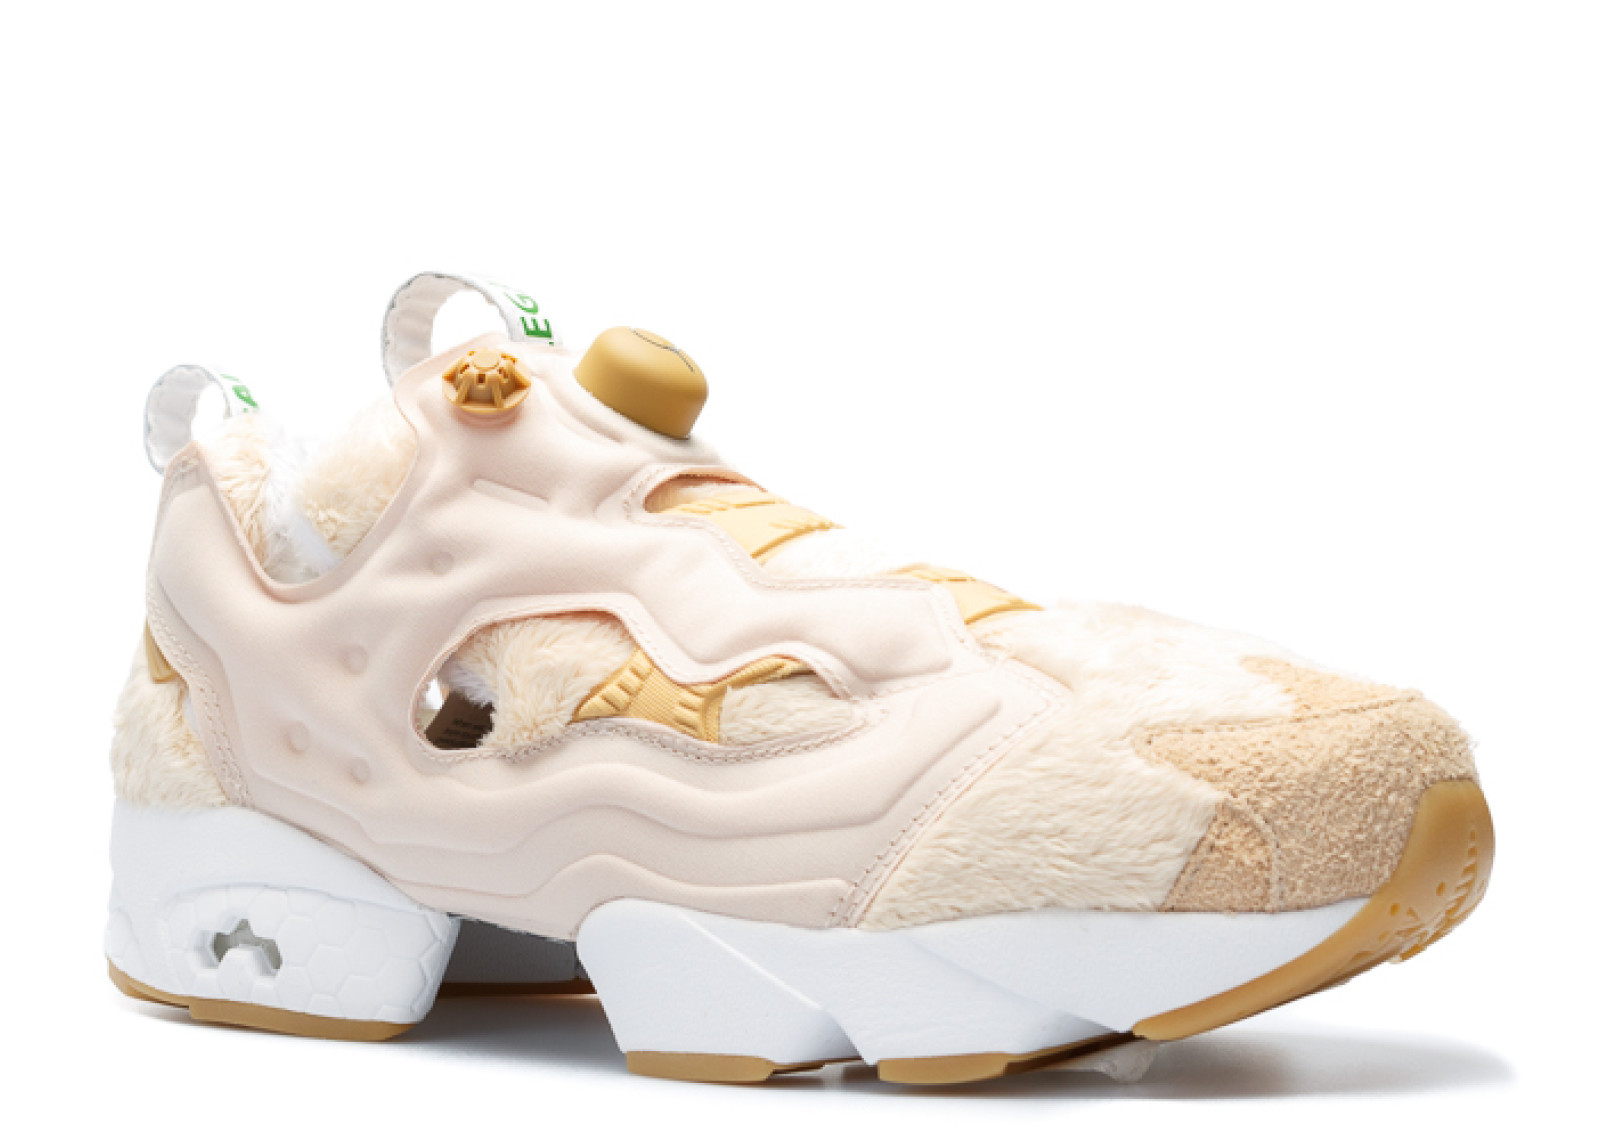 check out c4c27 56ff4 Reebok Instapump Fury Bait